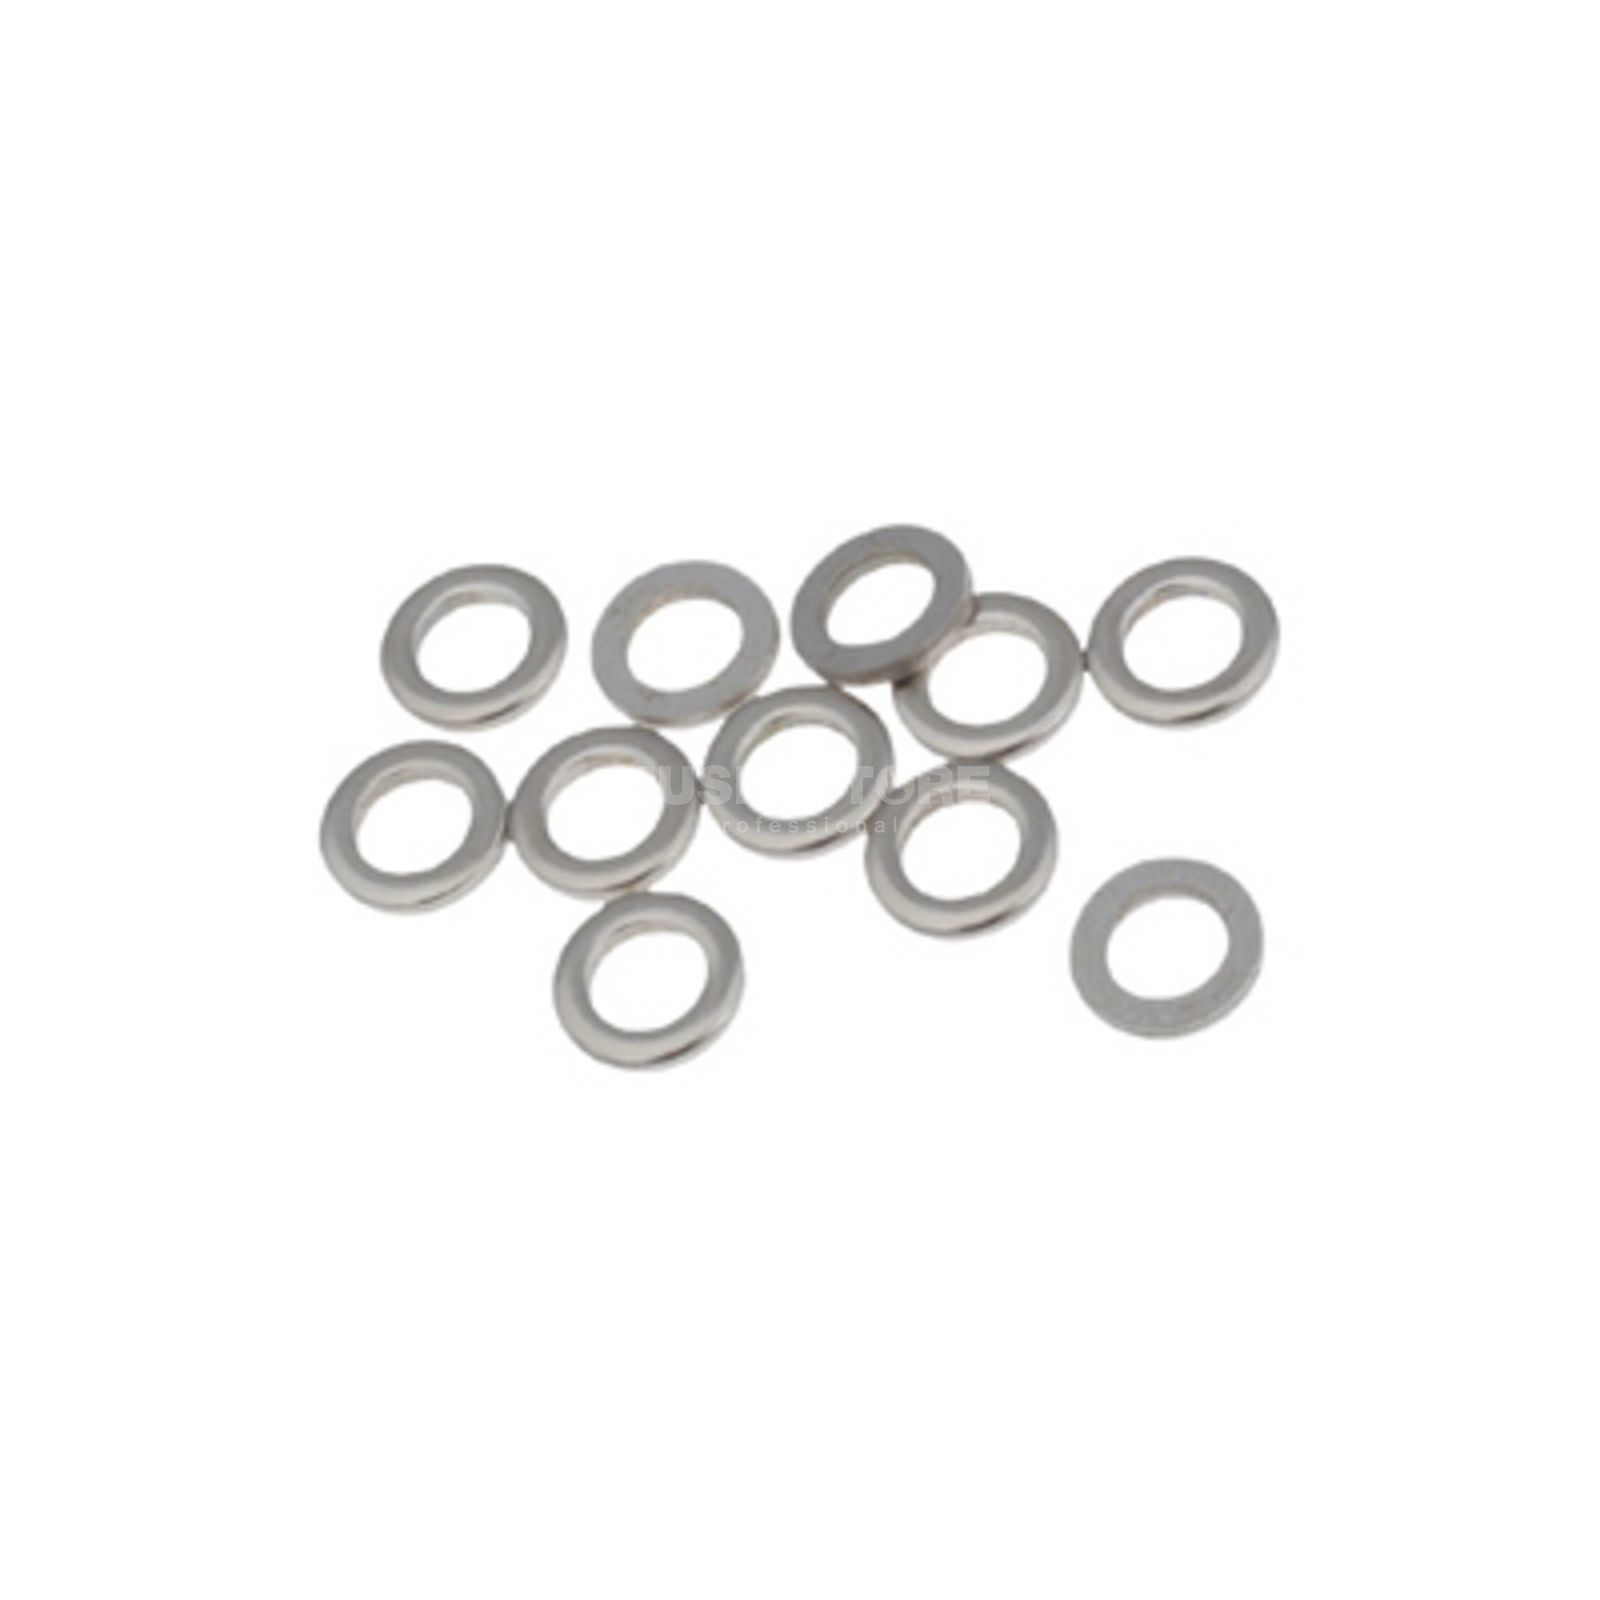 Gibraltar Washers SC-11, steel, 12 pcs Product Image